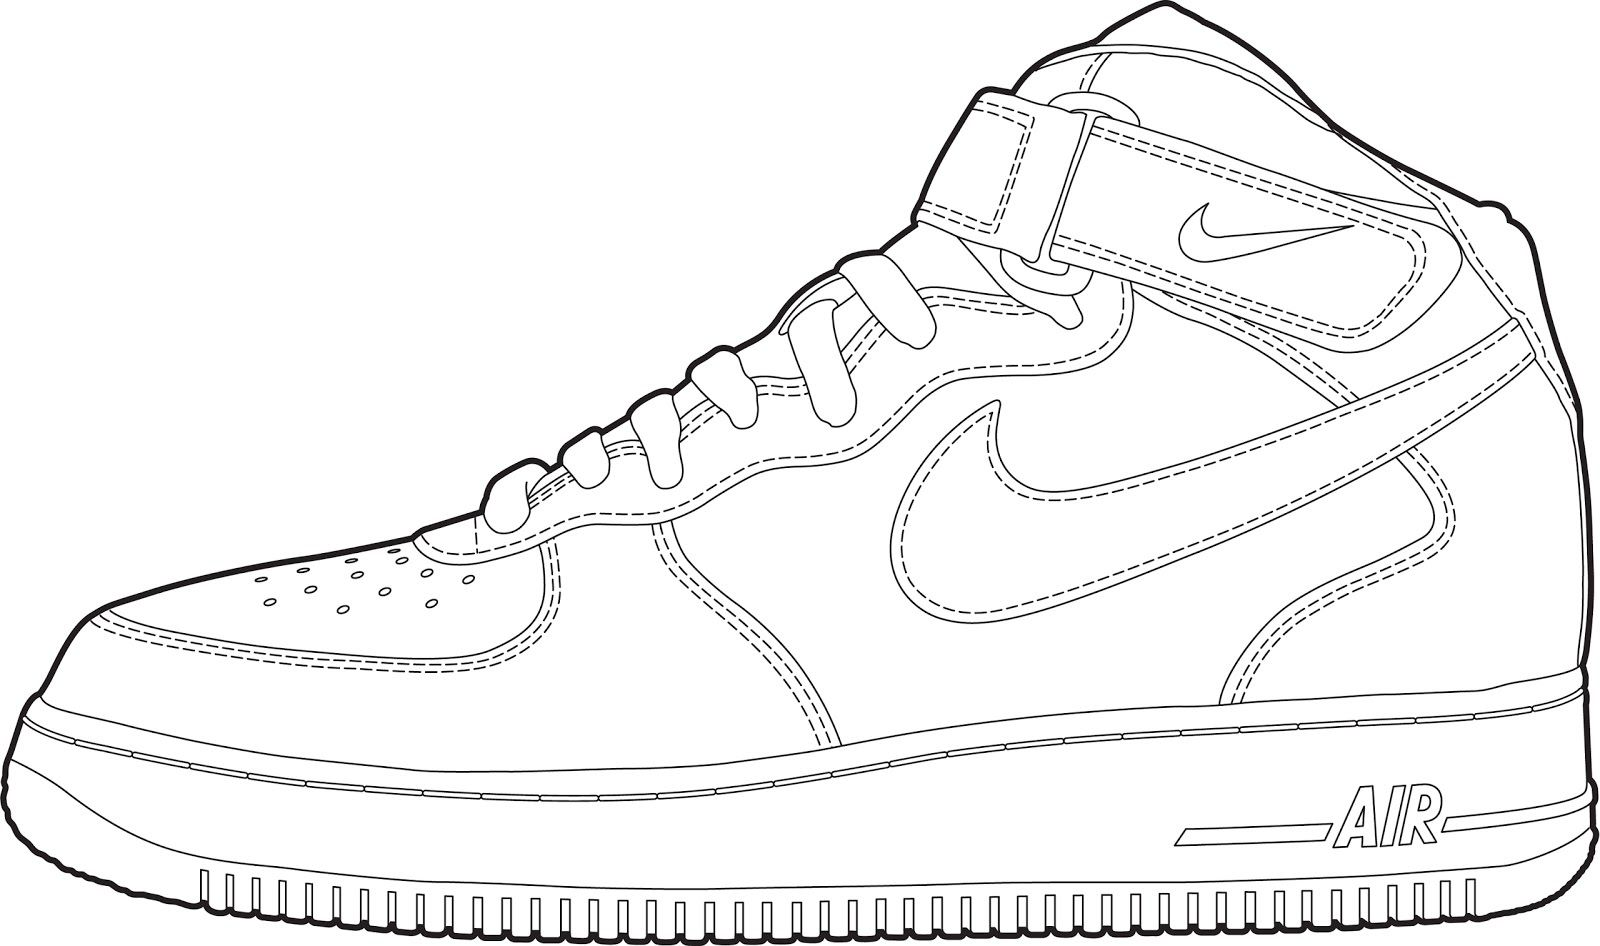 - Air Force One Coloring Sheet - 2018 Open Coloring Pages Sneakers